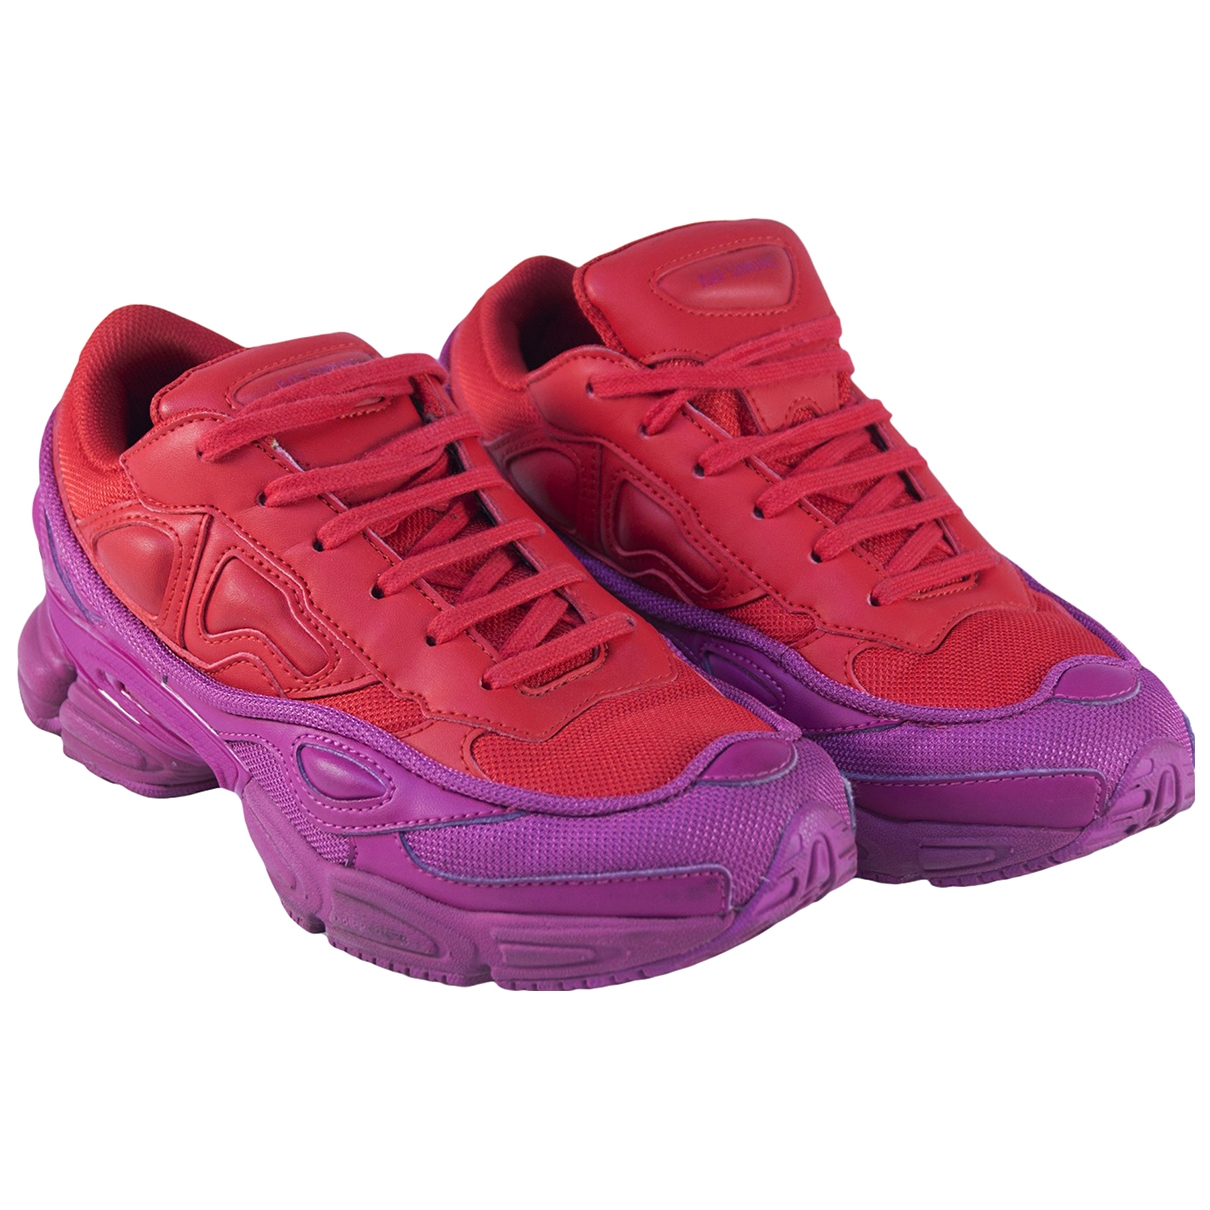 Adidas X Raf Simons Ozweego 2 Red Leather Trainers for Women 37.5 EU